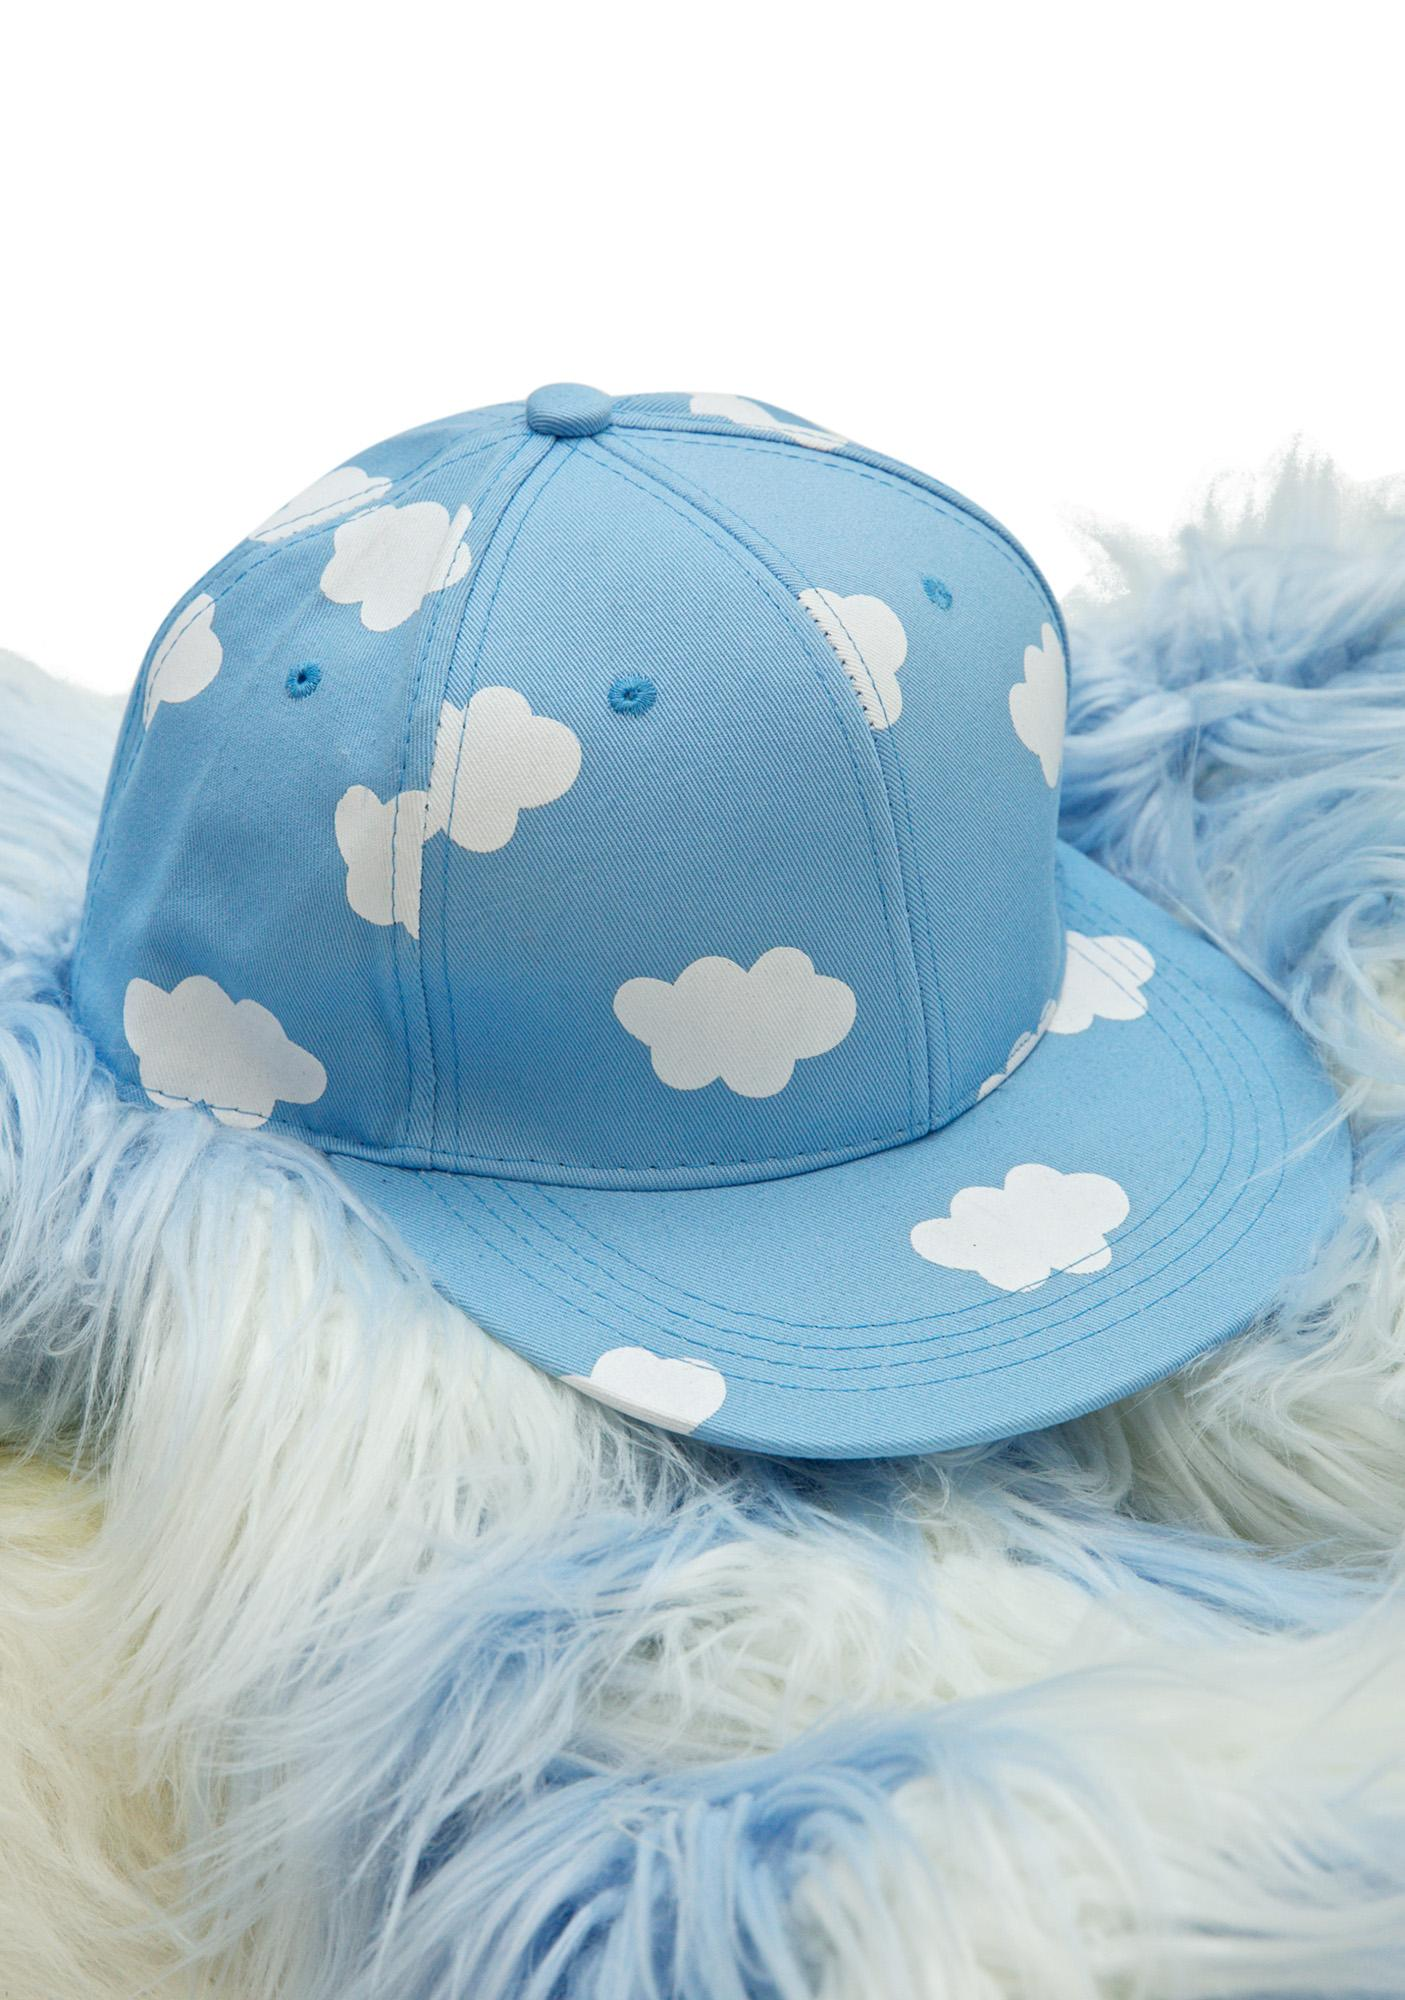 Cloudy Baseball Hat